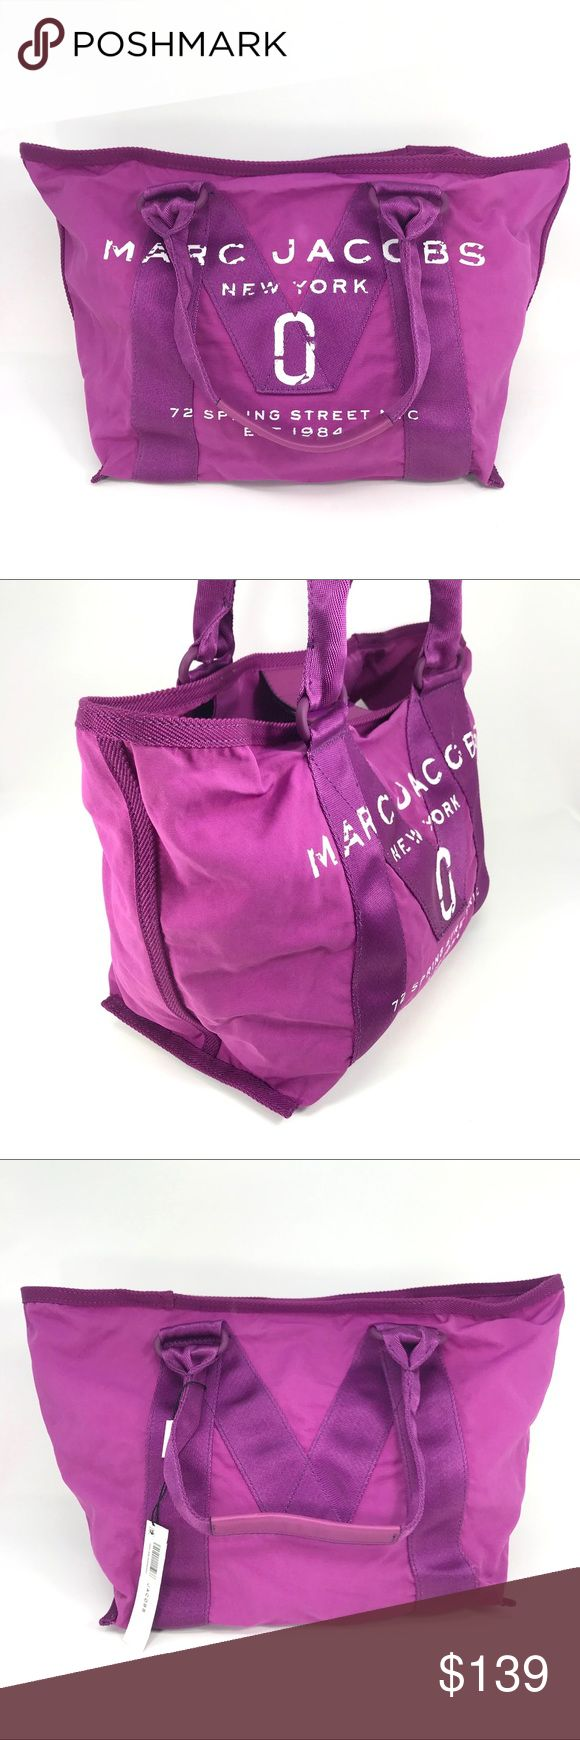 """NWT Marc Jacobs New Logo Canvas Lilac Tote Bag This bright purple tote bag from Marc Jacobs is the perfect accessory for a busy lifestyle, as a shopper or gym bag.  Marc Jacobs  100% authentic  Condition: brand new with tags  Retail: $198 plus tax  Tote bag  Color: lilac purple  Material: cotton nylon / leather trim  Double handles Velcro tab closure Unlined Two interior zip pockets Oversized logo graphic on front  Approximate Measurements: Length: 19"""" Height: 11.5"""" Width: 6.75"""" Strap: 10.6""""…"""